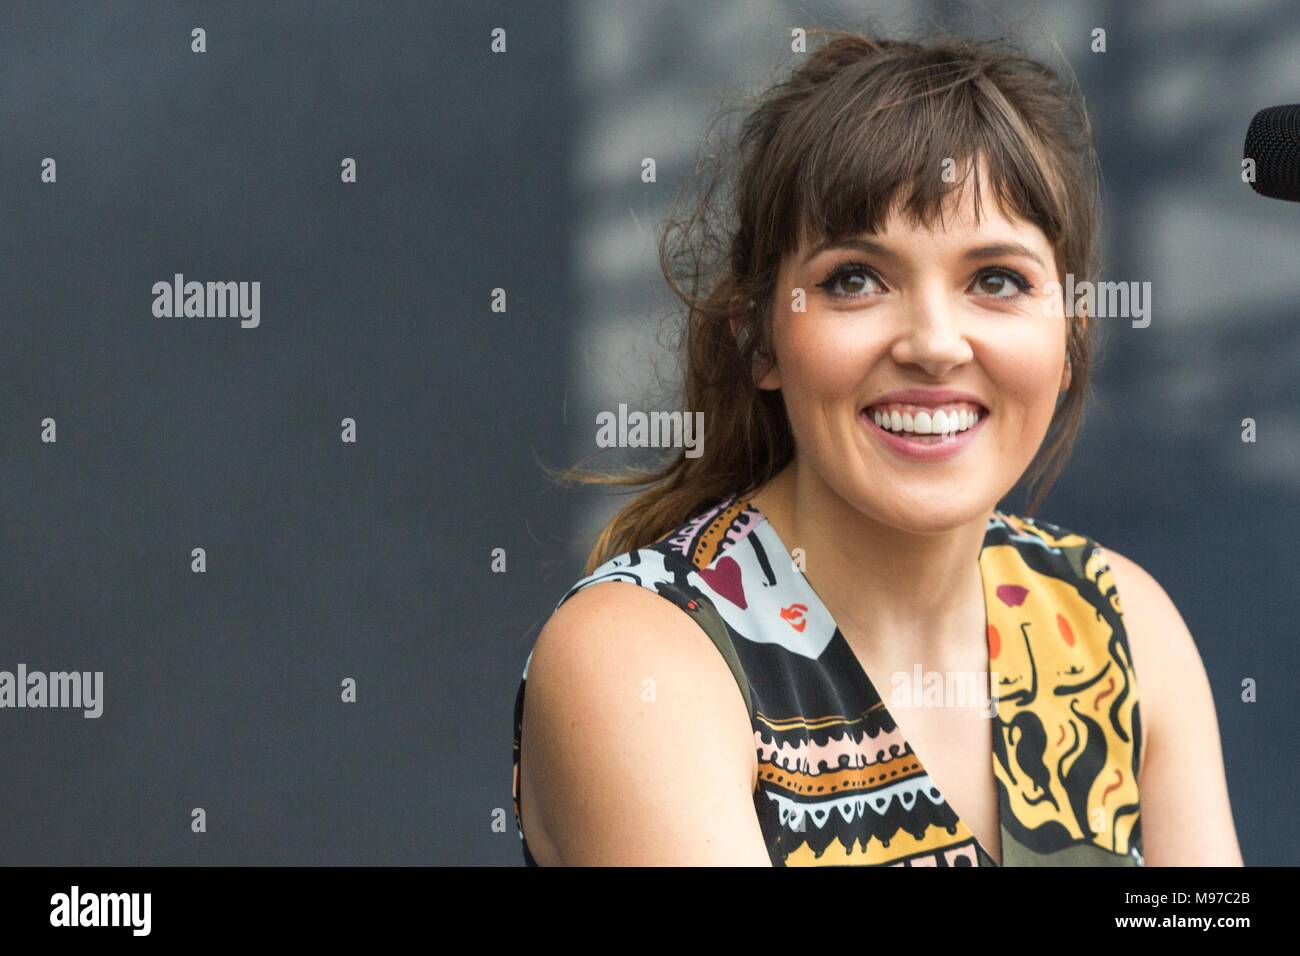 Sao Paulo, Brazil. 23rd Mar, 2018. Oh Wonder performs during the first day of Lollapalooza  Brazil 2018 at Autódromo de Interlagos,  on March 23, 2018 in São Paulo, Brazil. (Photo by Adriana Spaca) Credit: Adriana Spaca/Alamy Live News - Stock Image